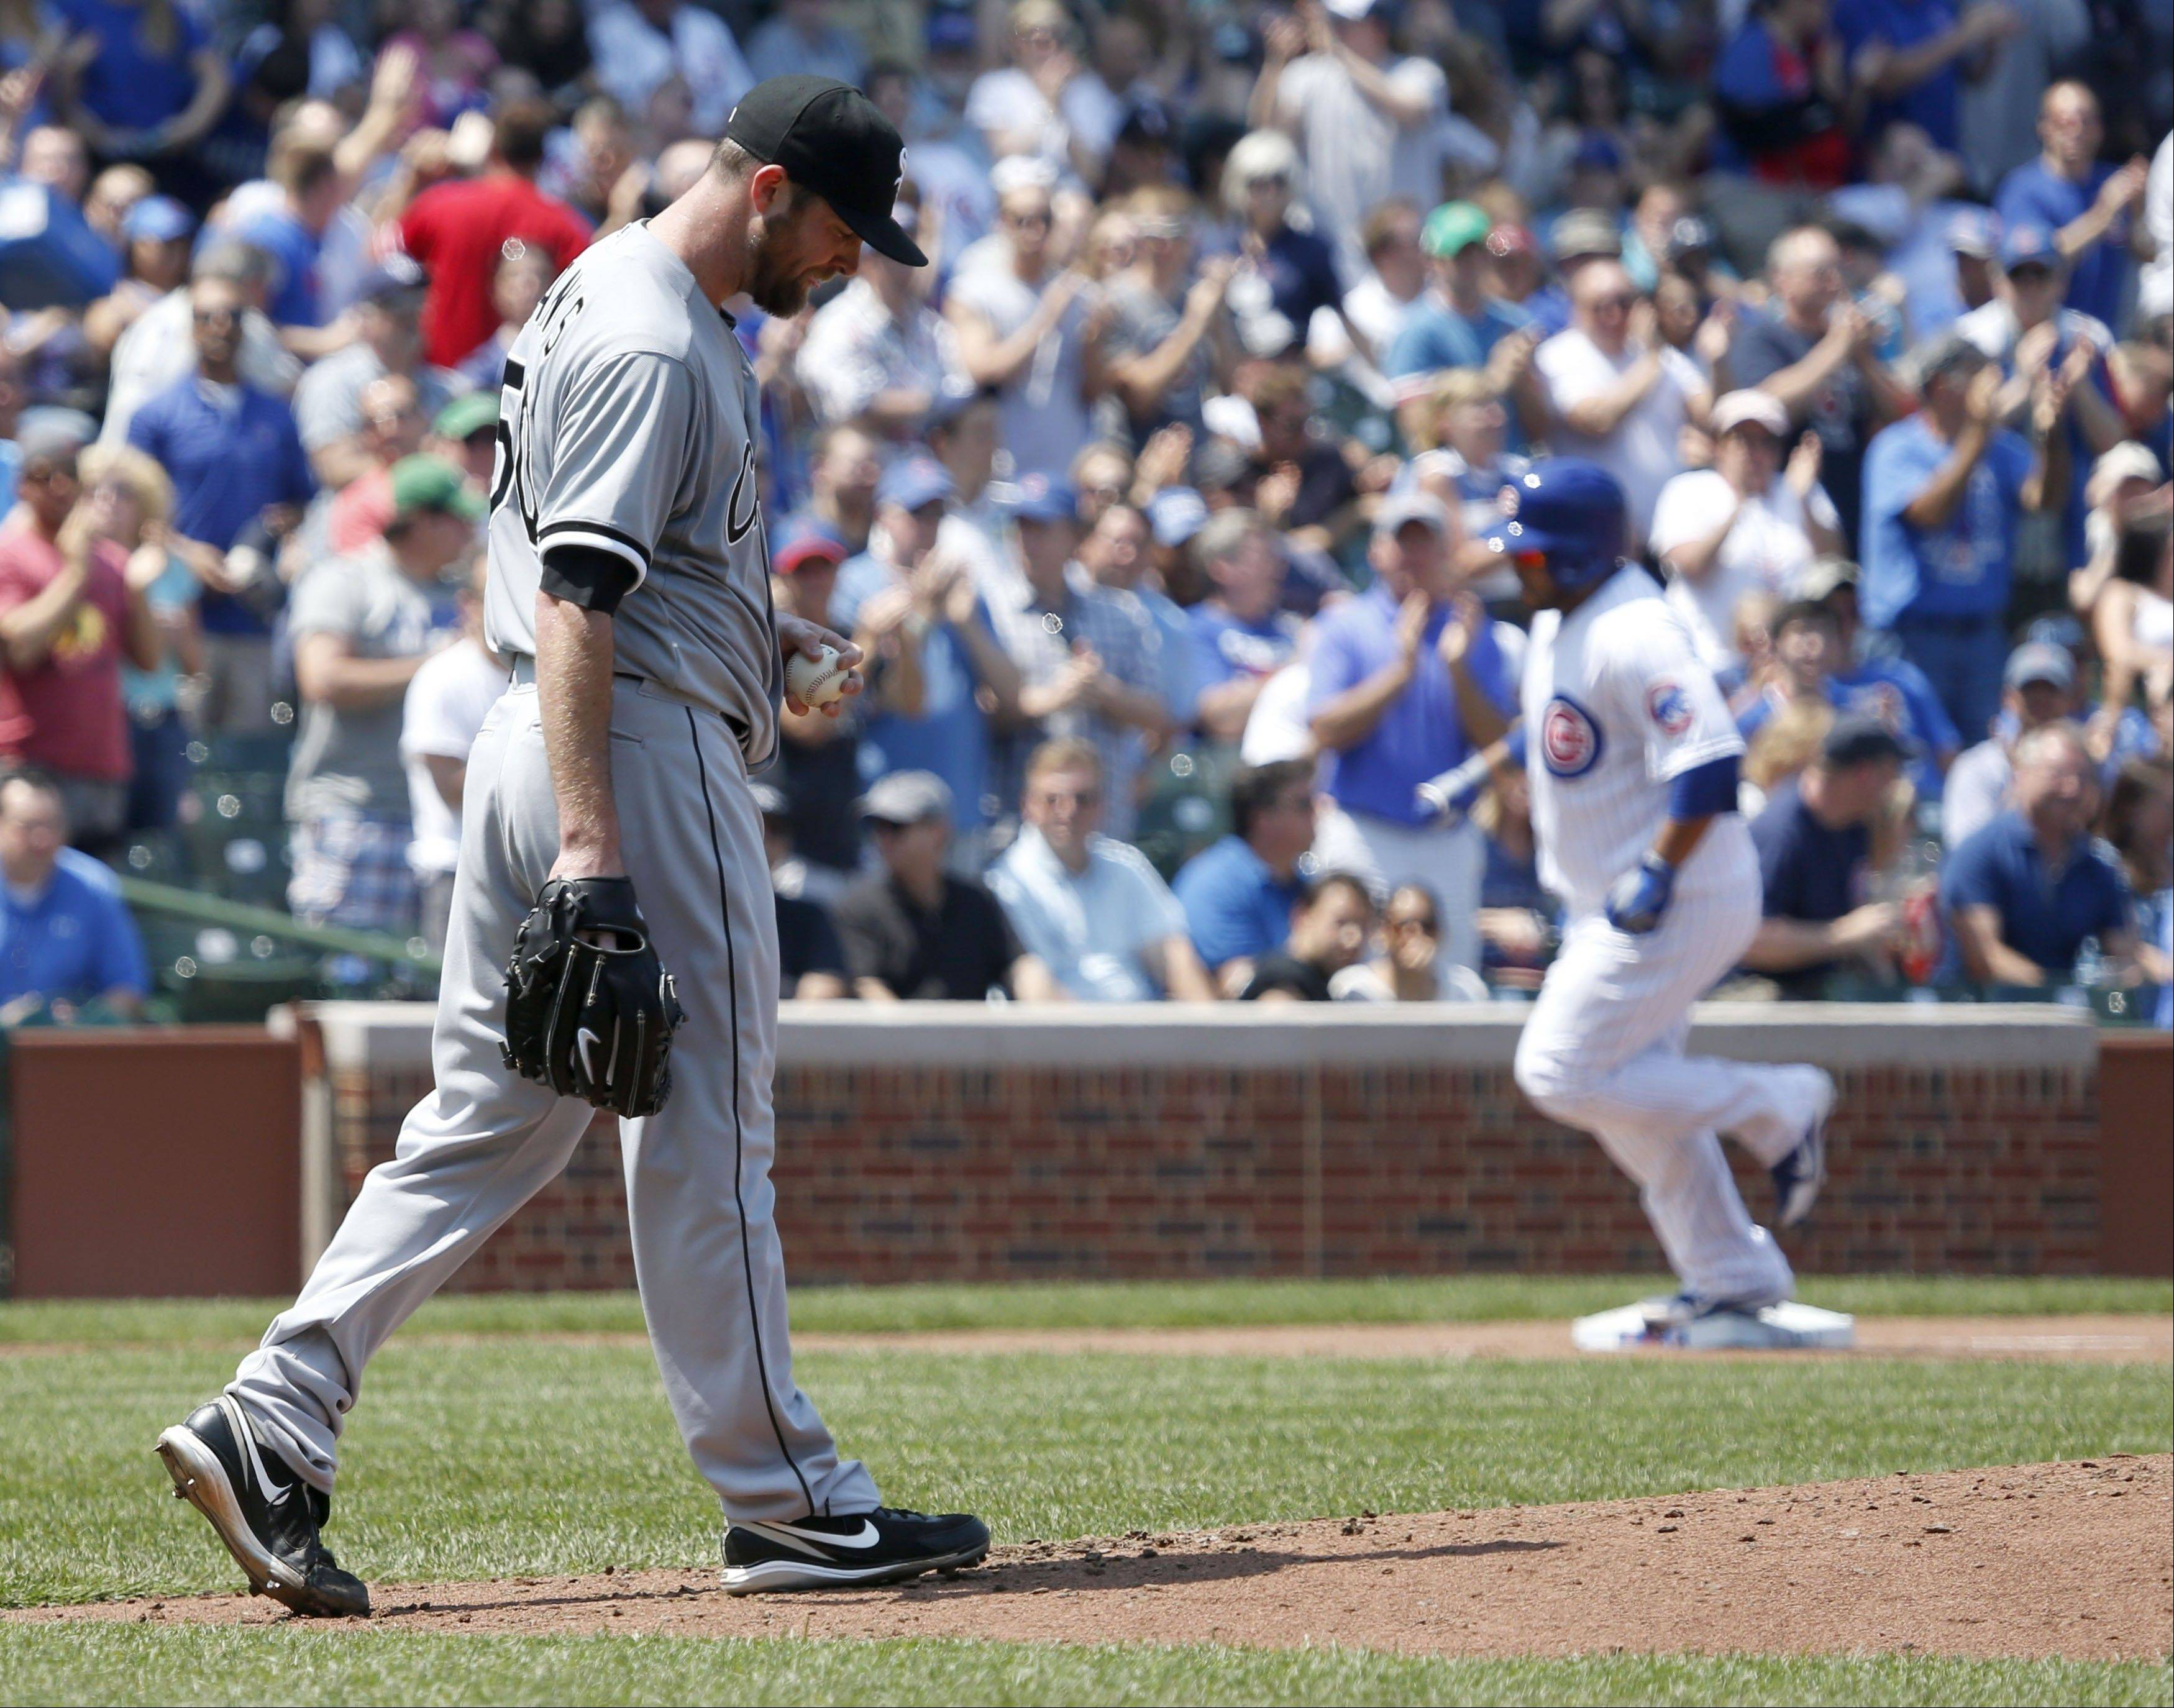 Associated PressWhite Sox starter John Danks gave up a pair of homers to Dioner Navarro, right, during 4 innings of work Wednesday in the Cubs' 9-3 victory at Wrigley Field.